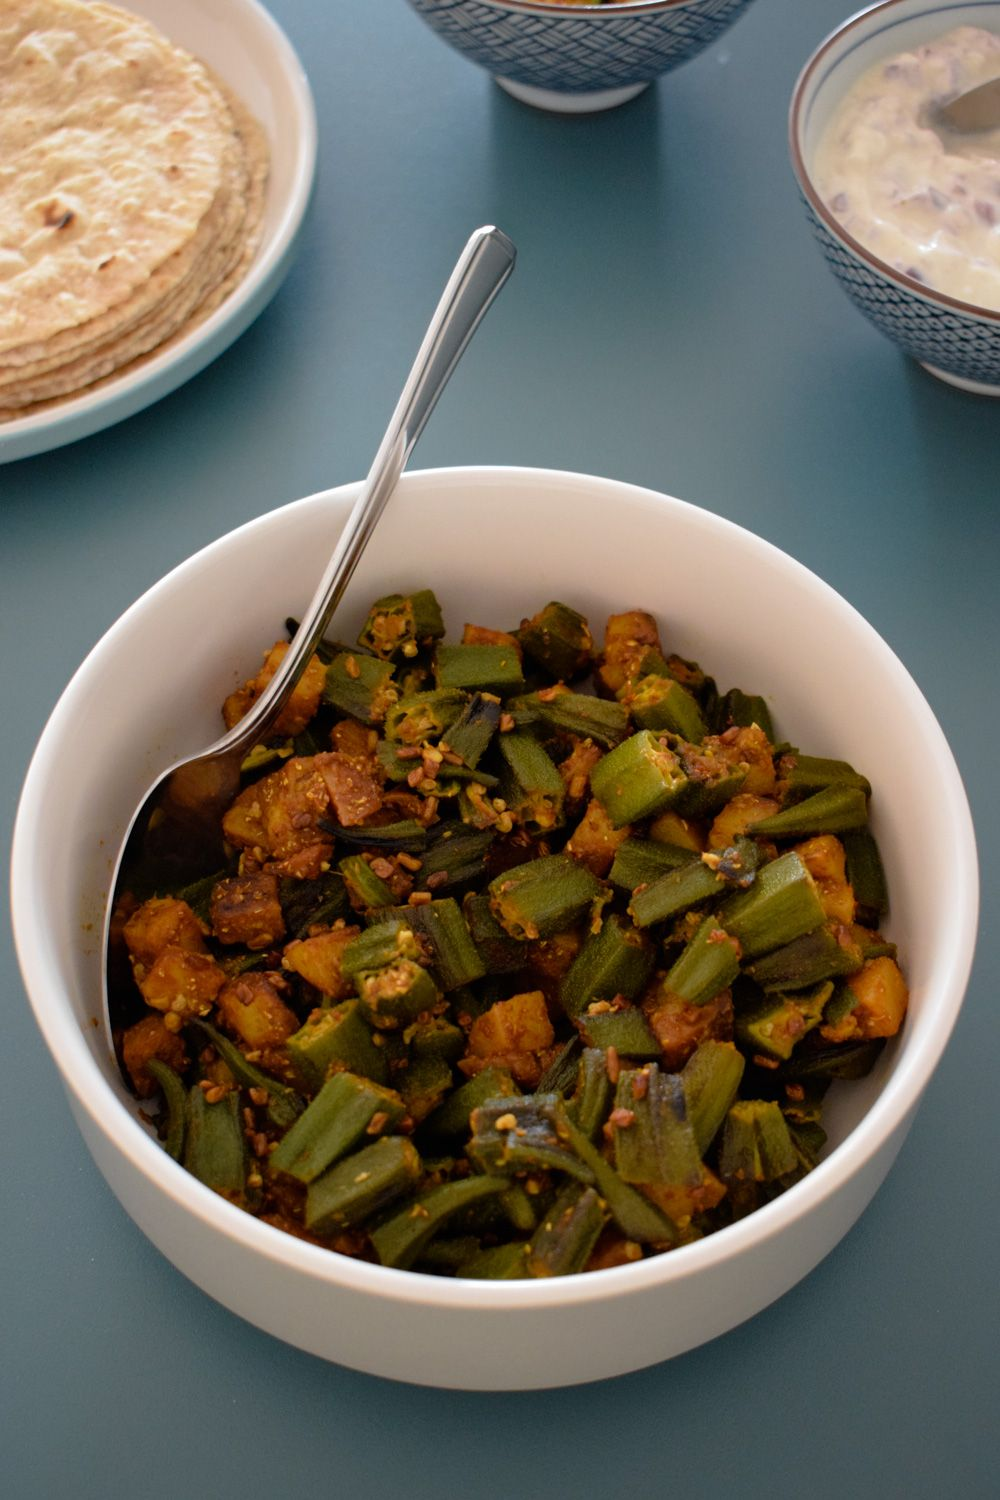 Bhinda nu shaak okra potato curry gujarati recipe indian curry food forumfinder Choice Image